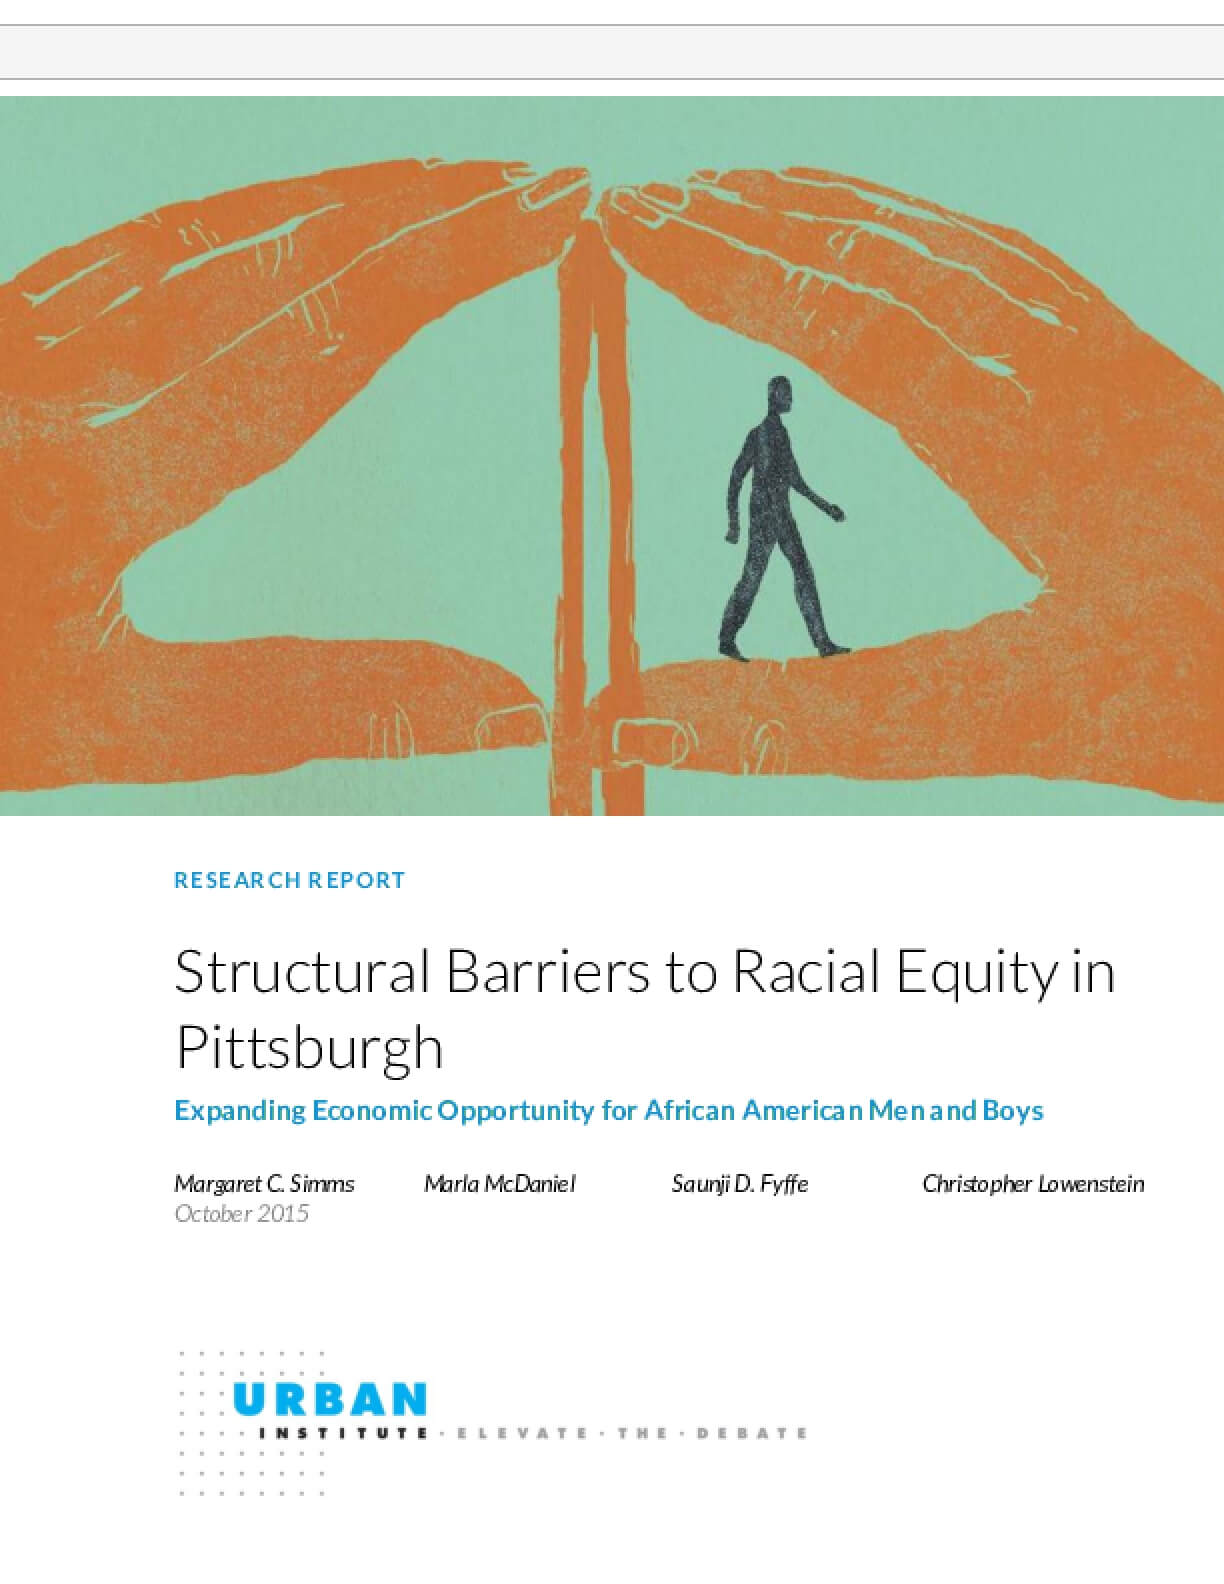 Structural Barriers to Racial Equity in Pittsburgh